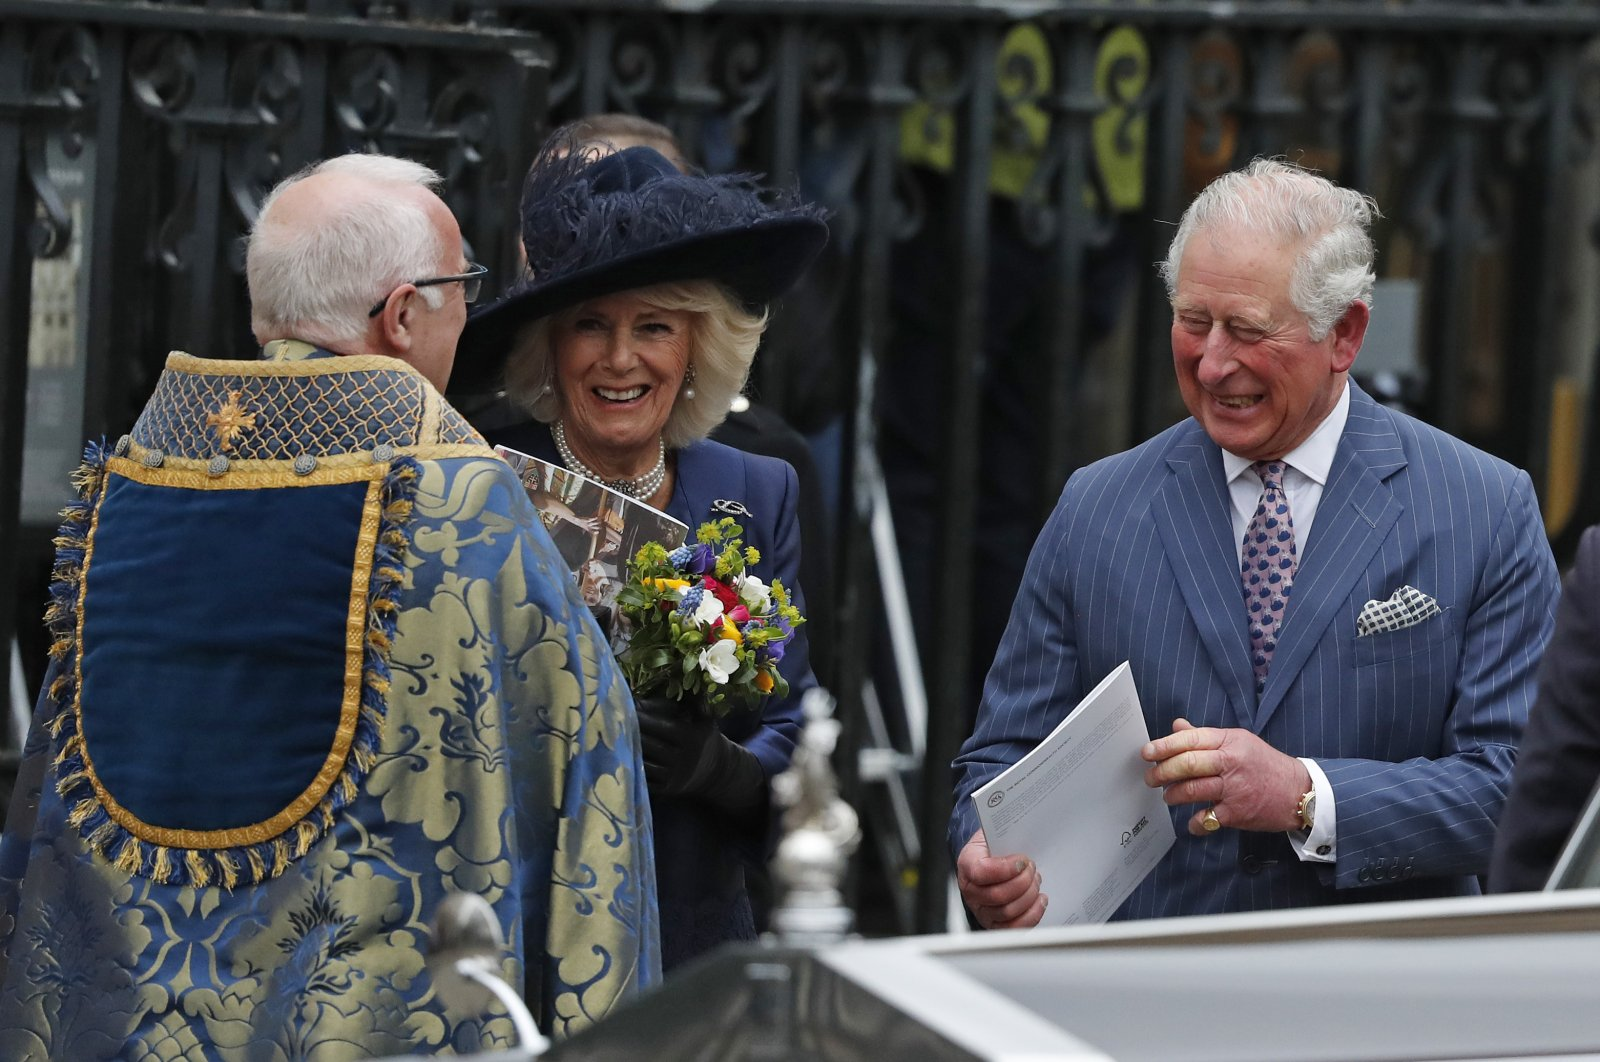 Britain's Prince Charles and Camilla, Duchess of Cornwall, leave after attending the annual Commonwealth Day service at Westminster Abbey in London, Monday, March 9, 2020. (AP Photo)